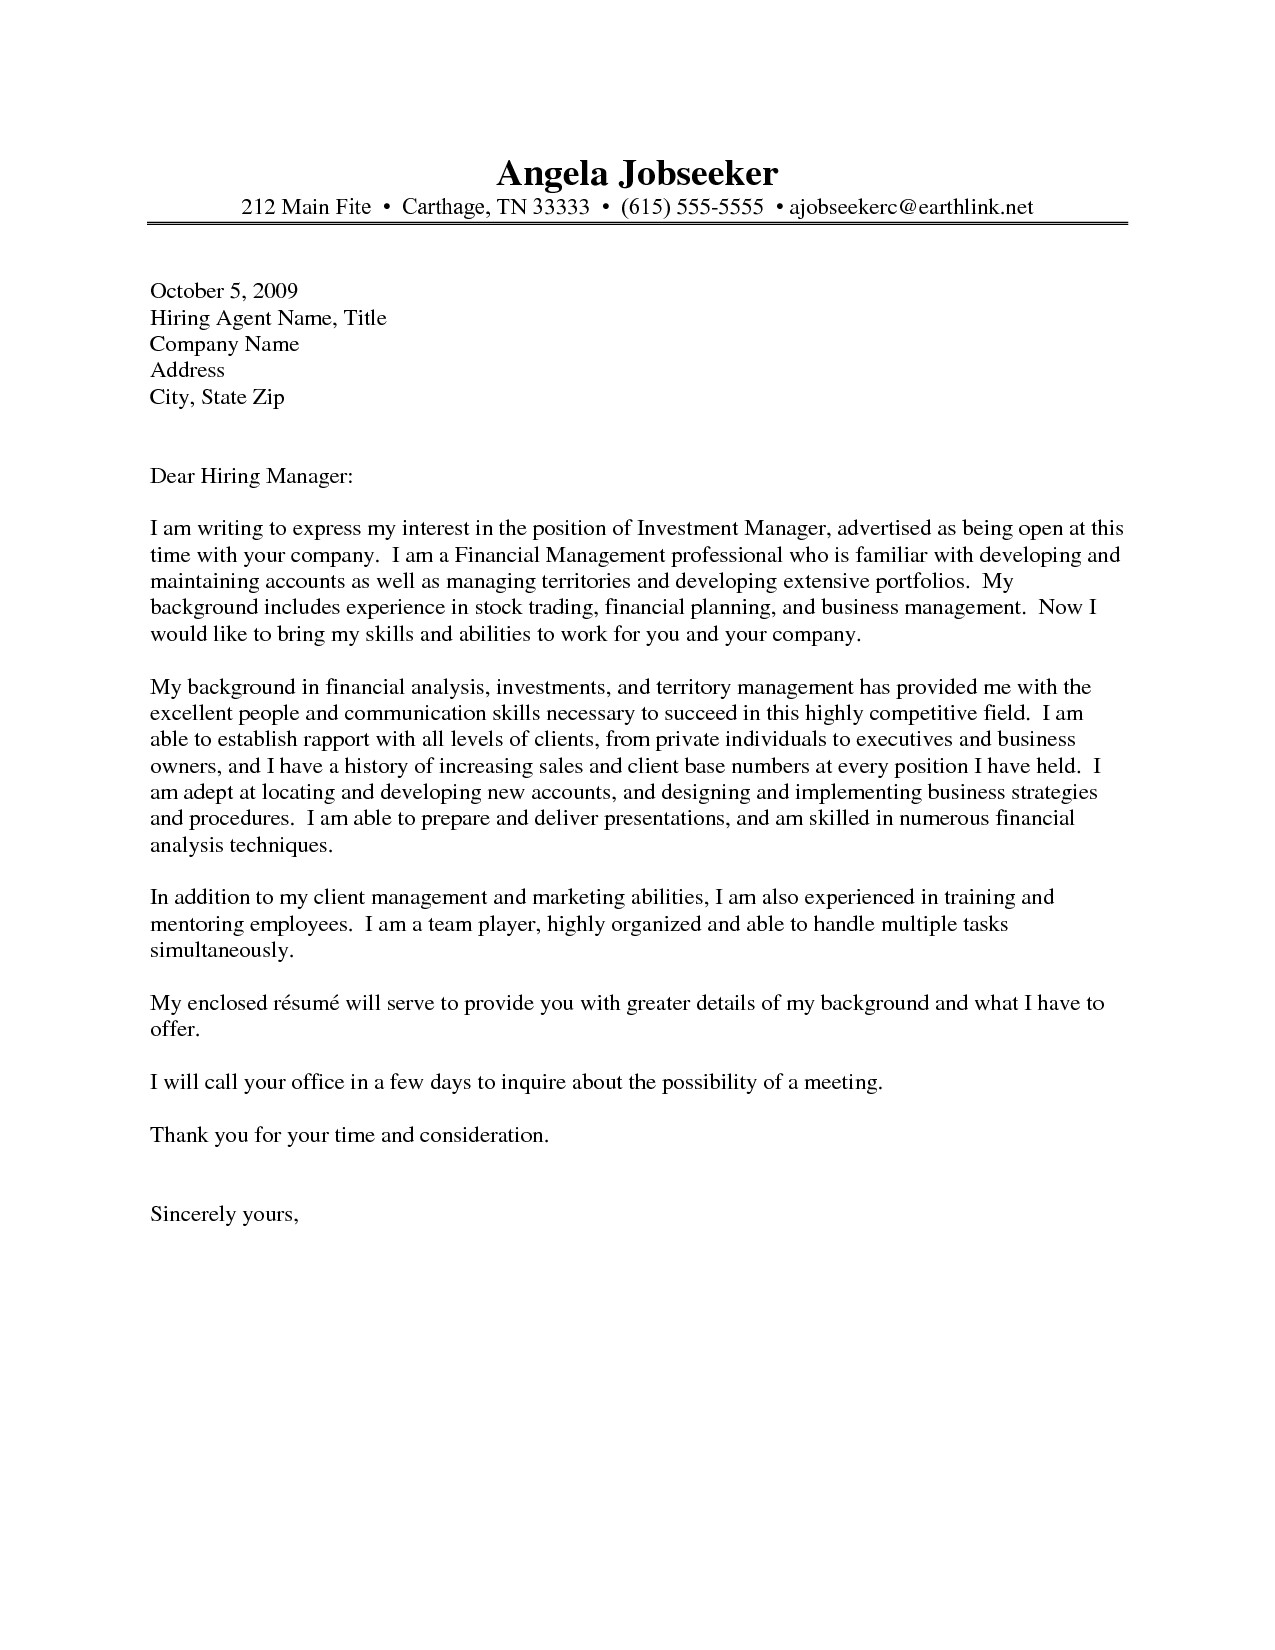 Cover Letter Template for Medical assistant - Resumes for Medical assistants Roddyschrock